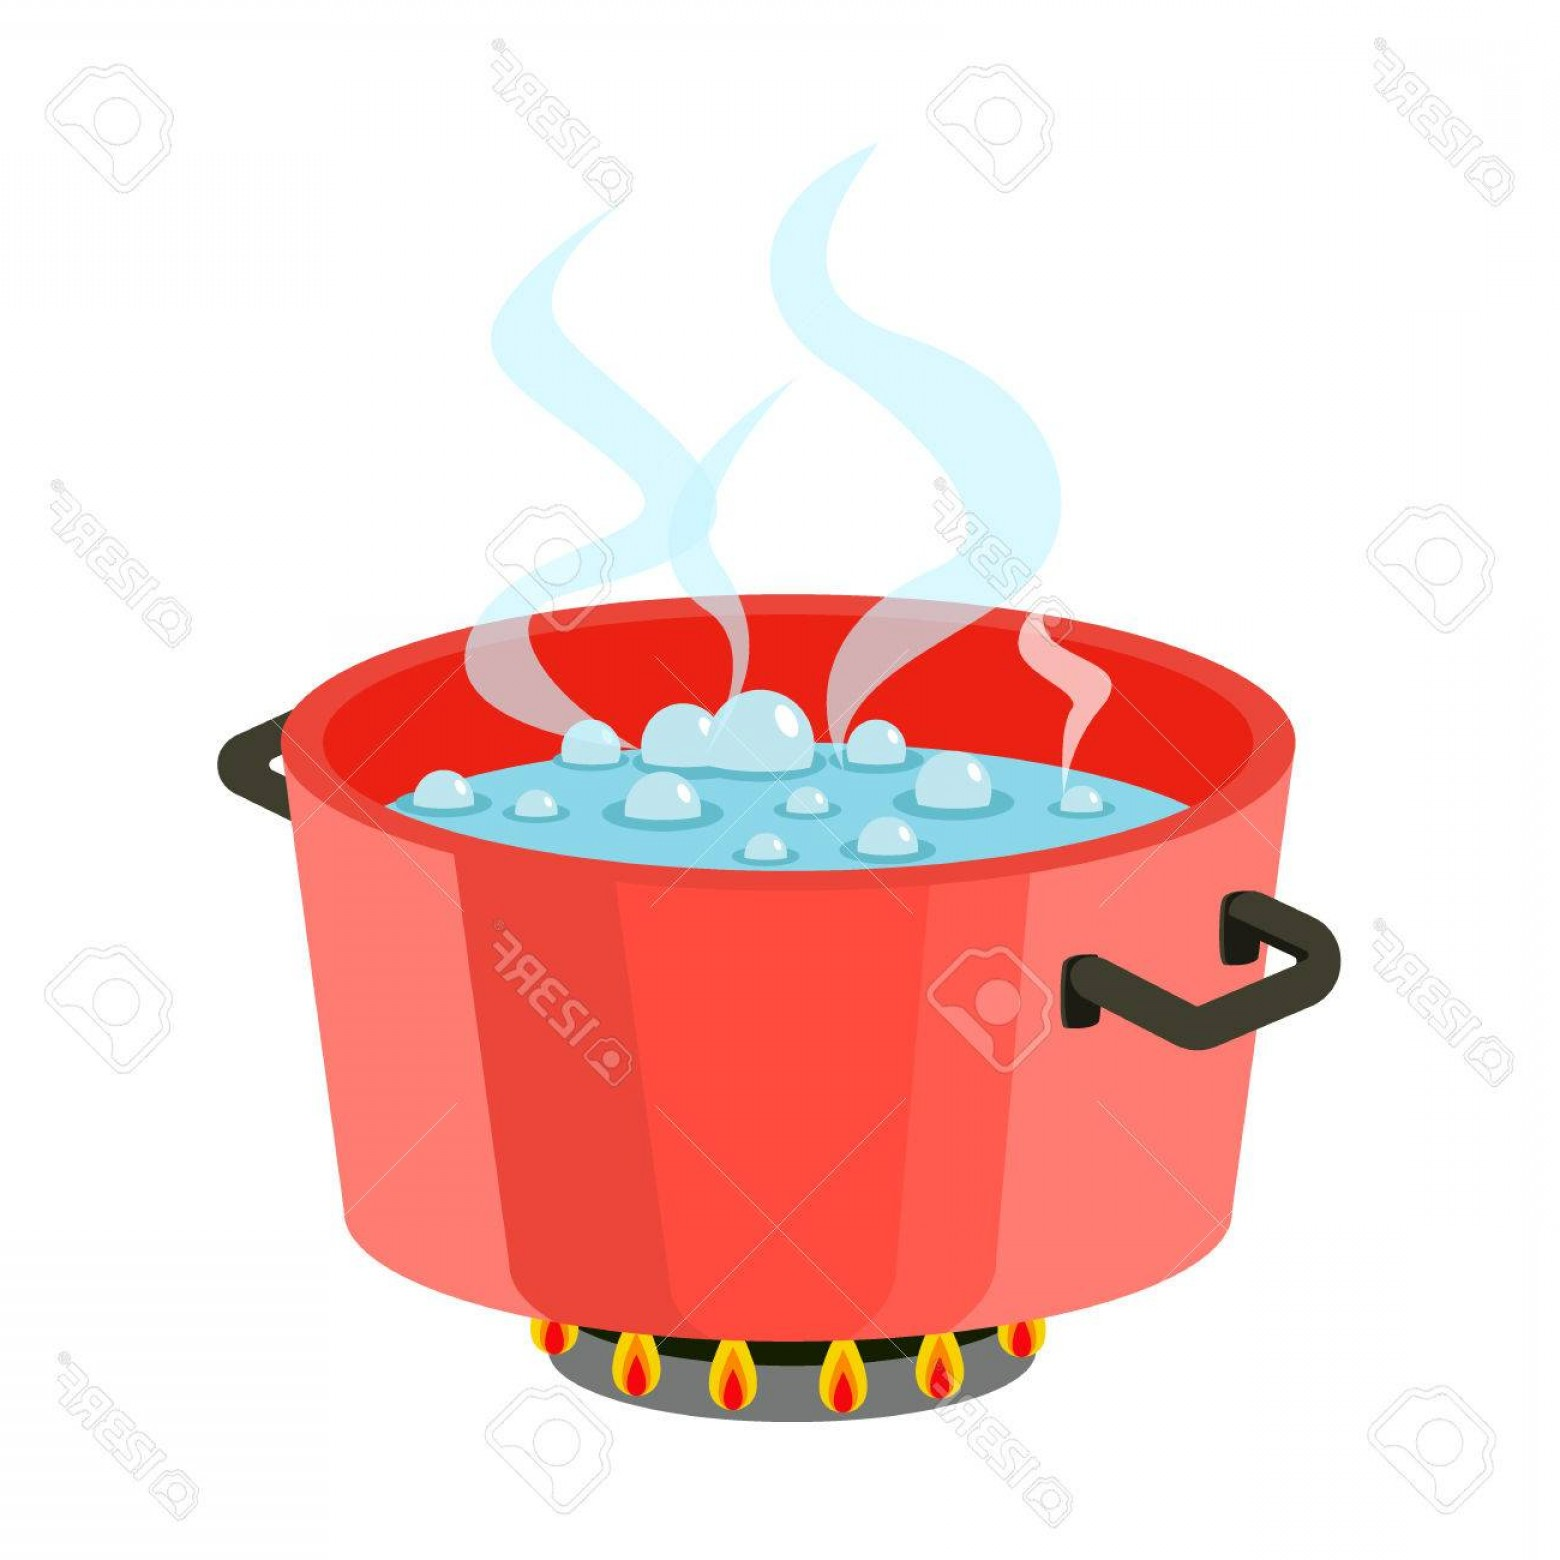 Big Cook With Cooking Pot Vector: Photostock Vector Boiling Water In Pan Red Cooking Pot On Stove With Water And Steam Flat Design Vector